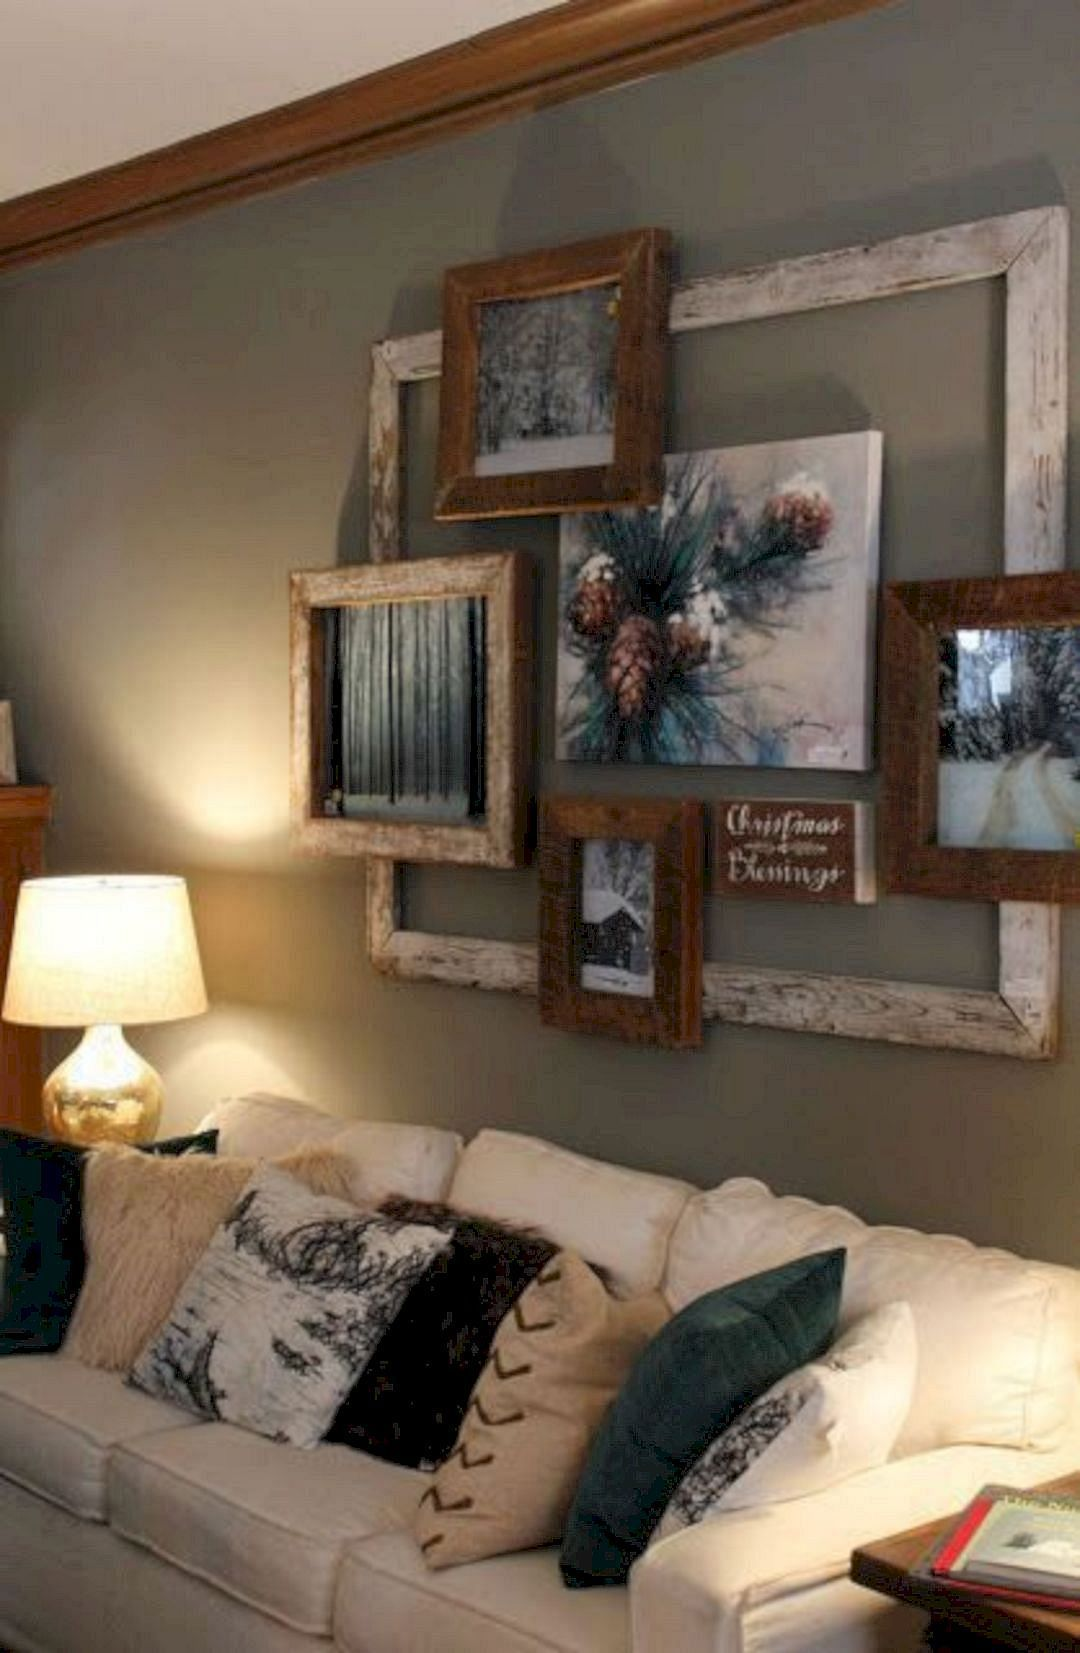 Genial Try These 15 Cheap Home Decorating Ideas Https:/